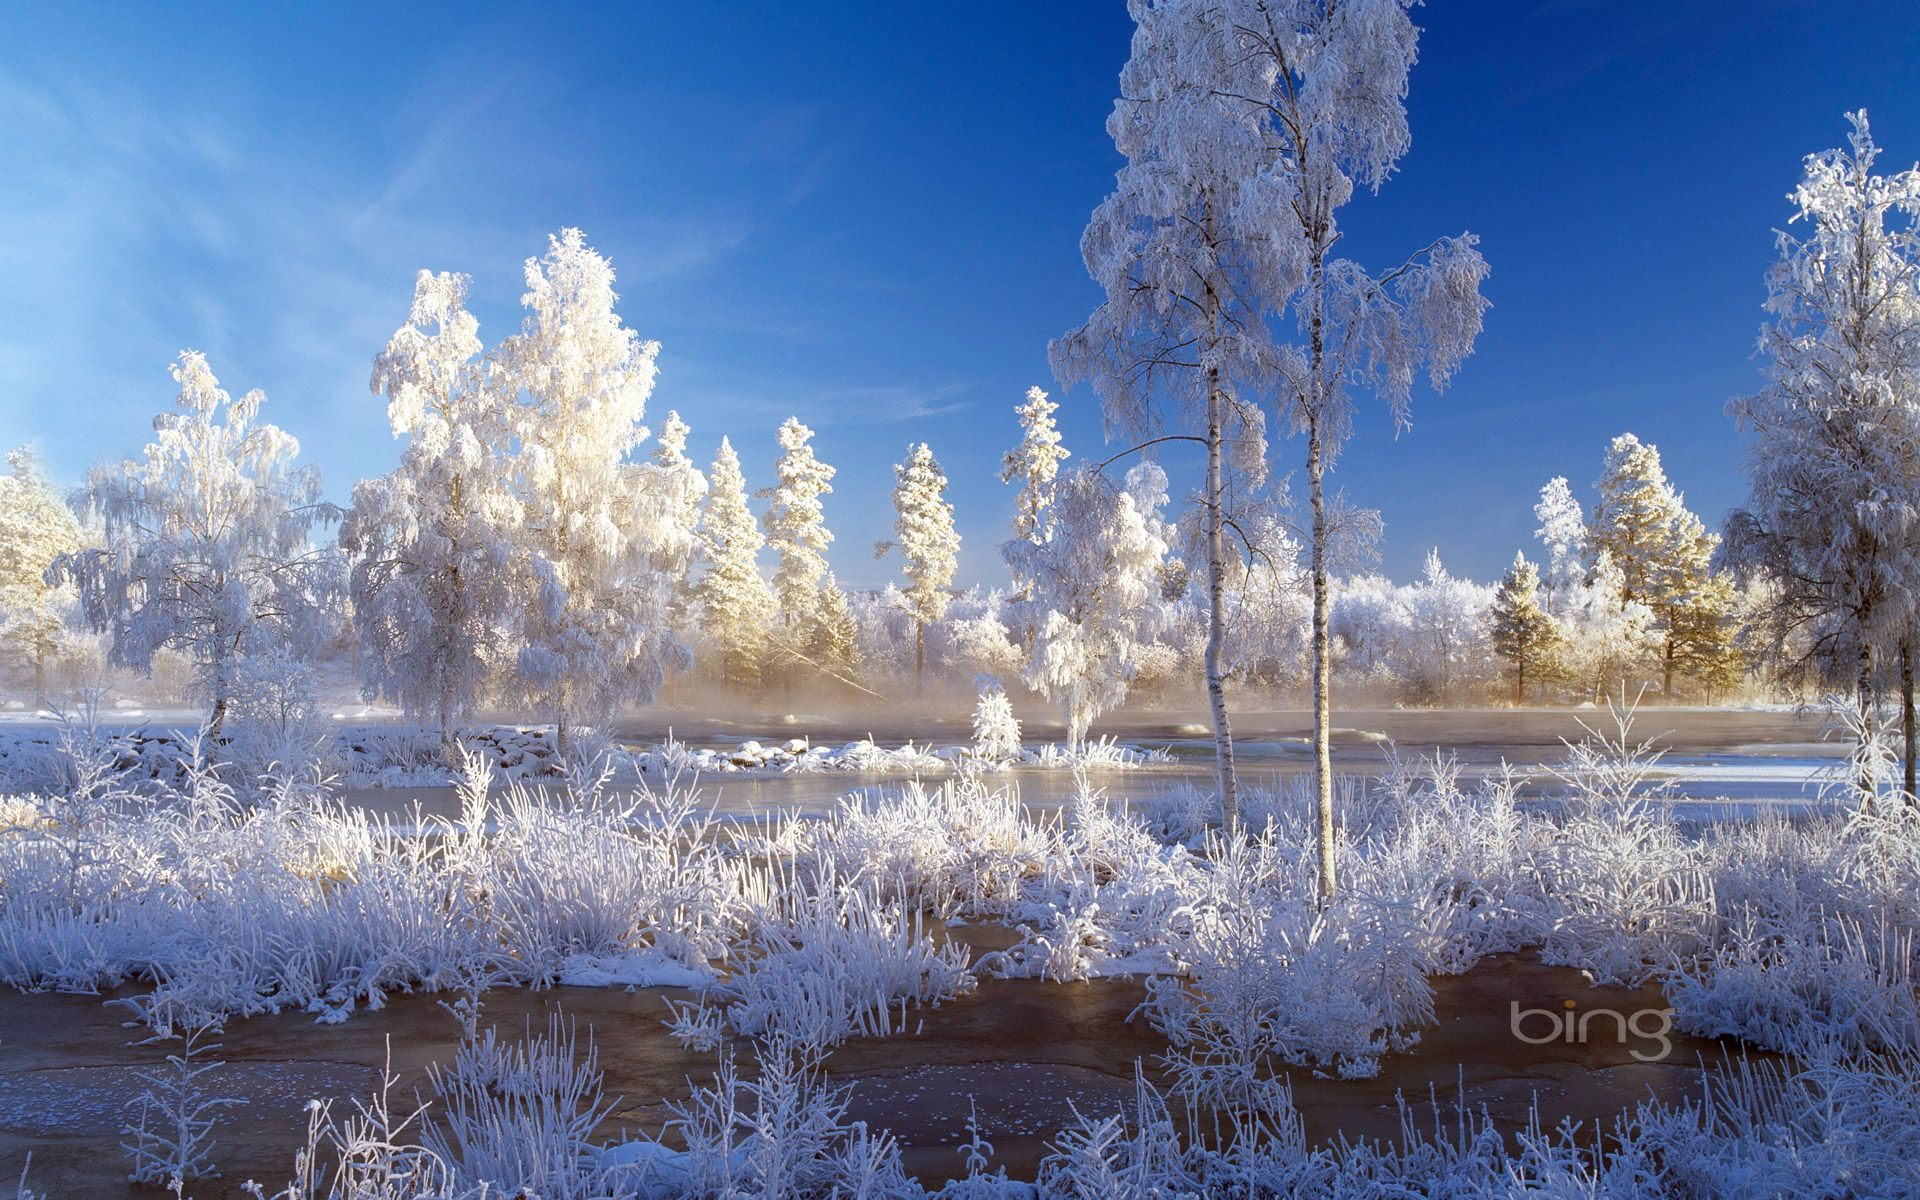 Bing Weekly Bing Wallpapers 25 To 31 December 2012 Hq